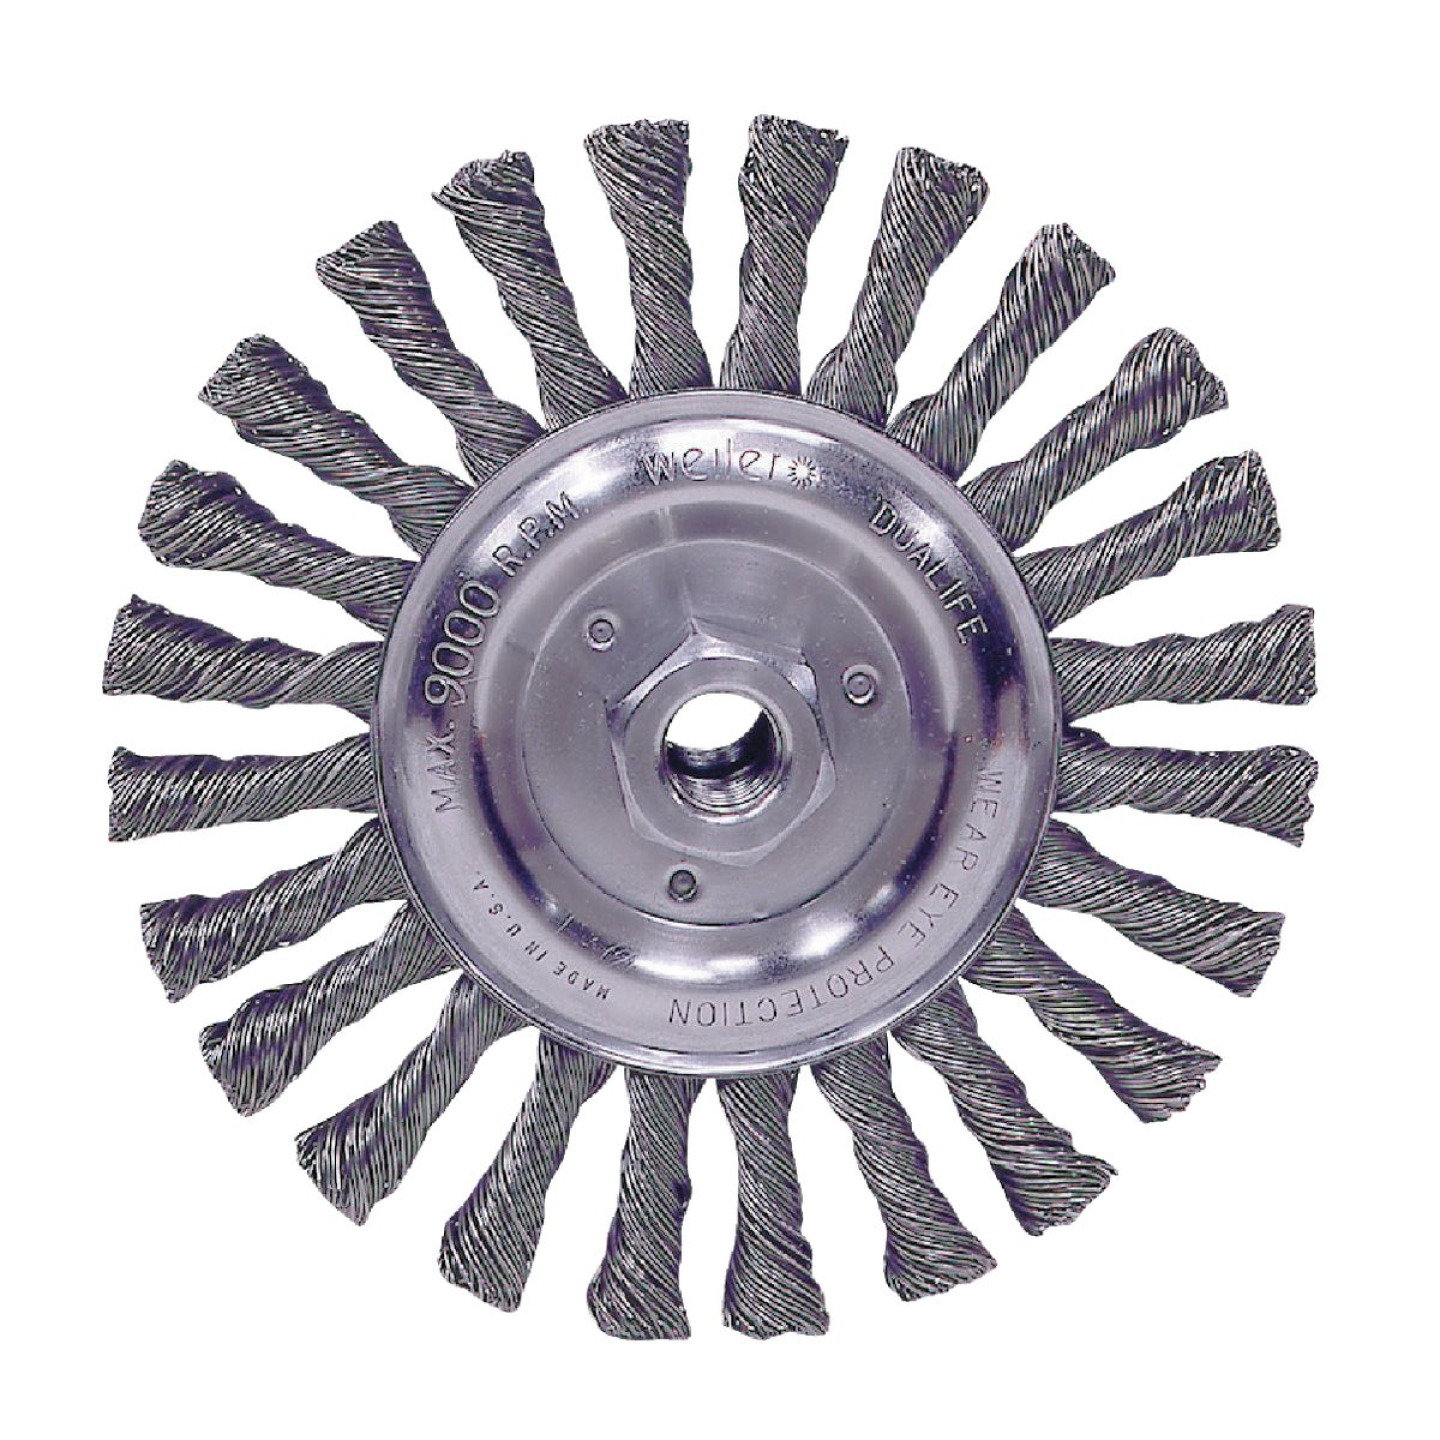 Weiler Vortec 6 In. Stringer Bead 0.025 In. Angle Grinder Wire Wheel Image 1